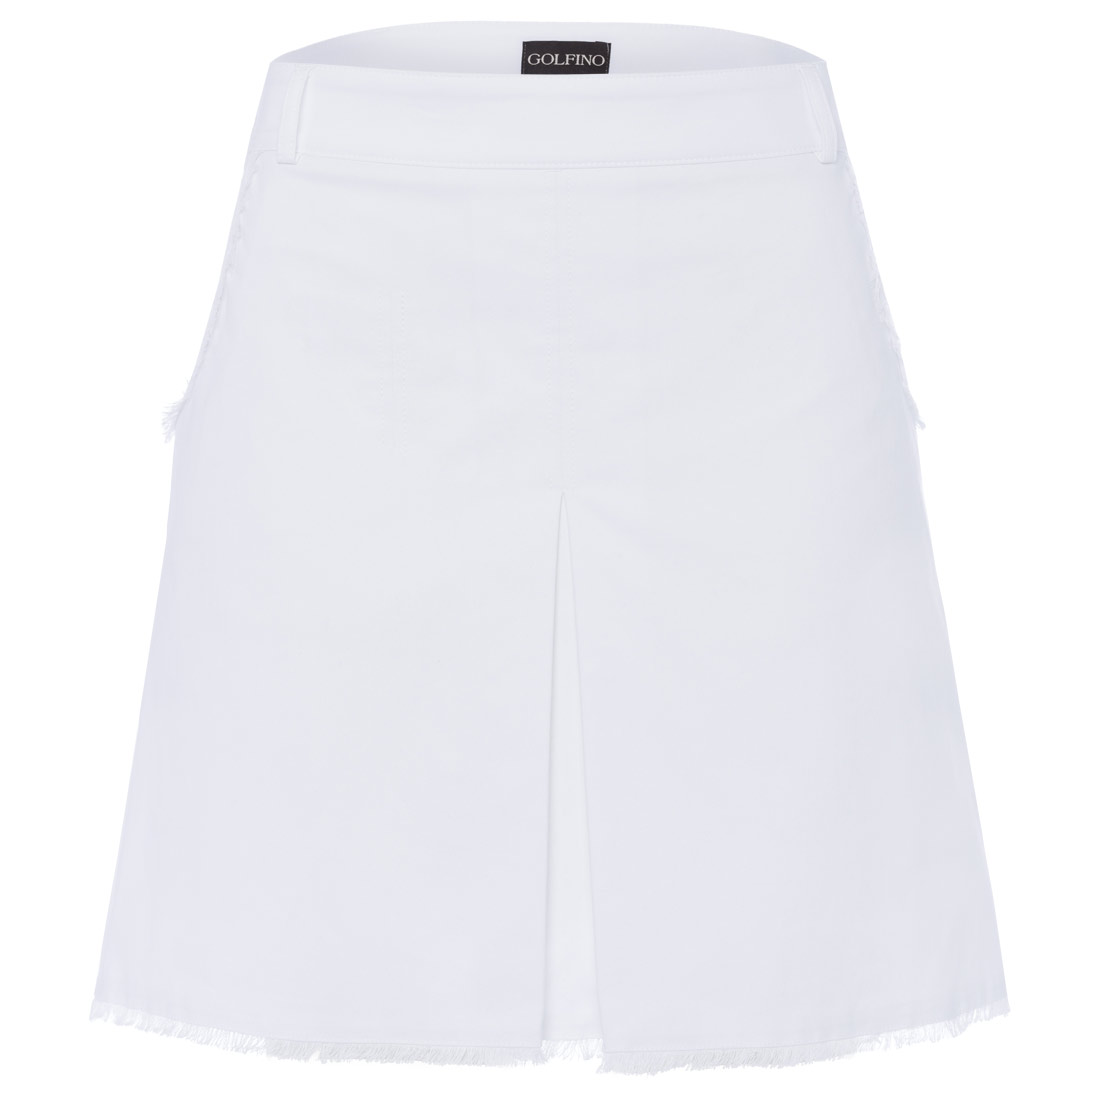 Ladies' skort with fringed edges